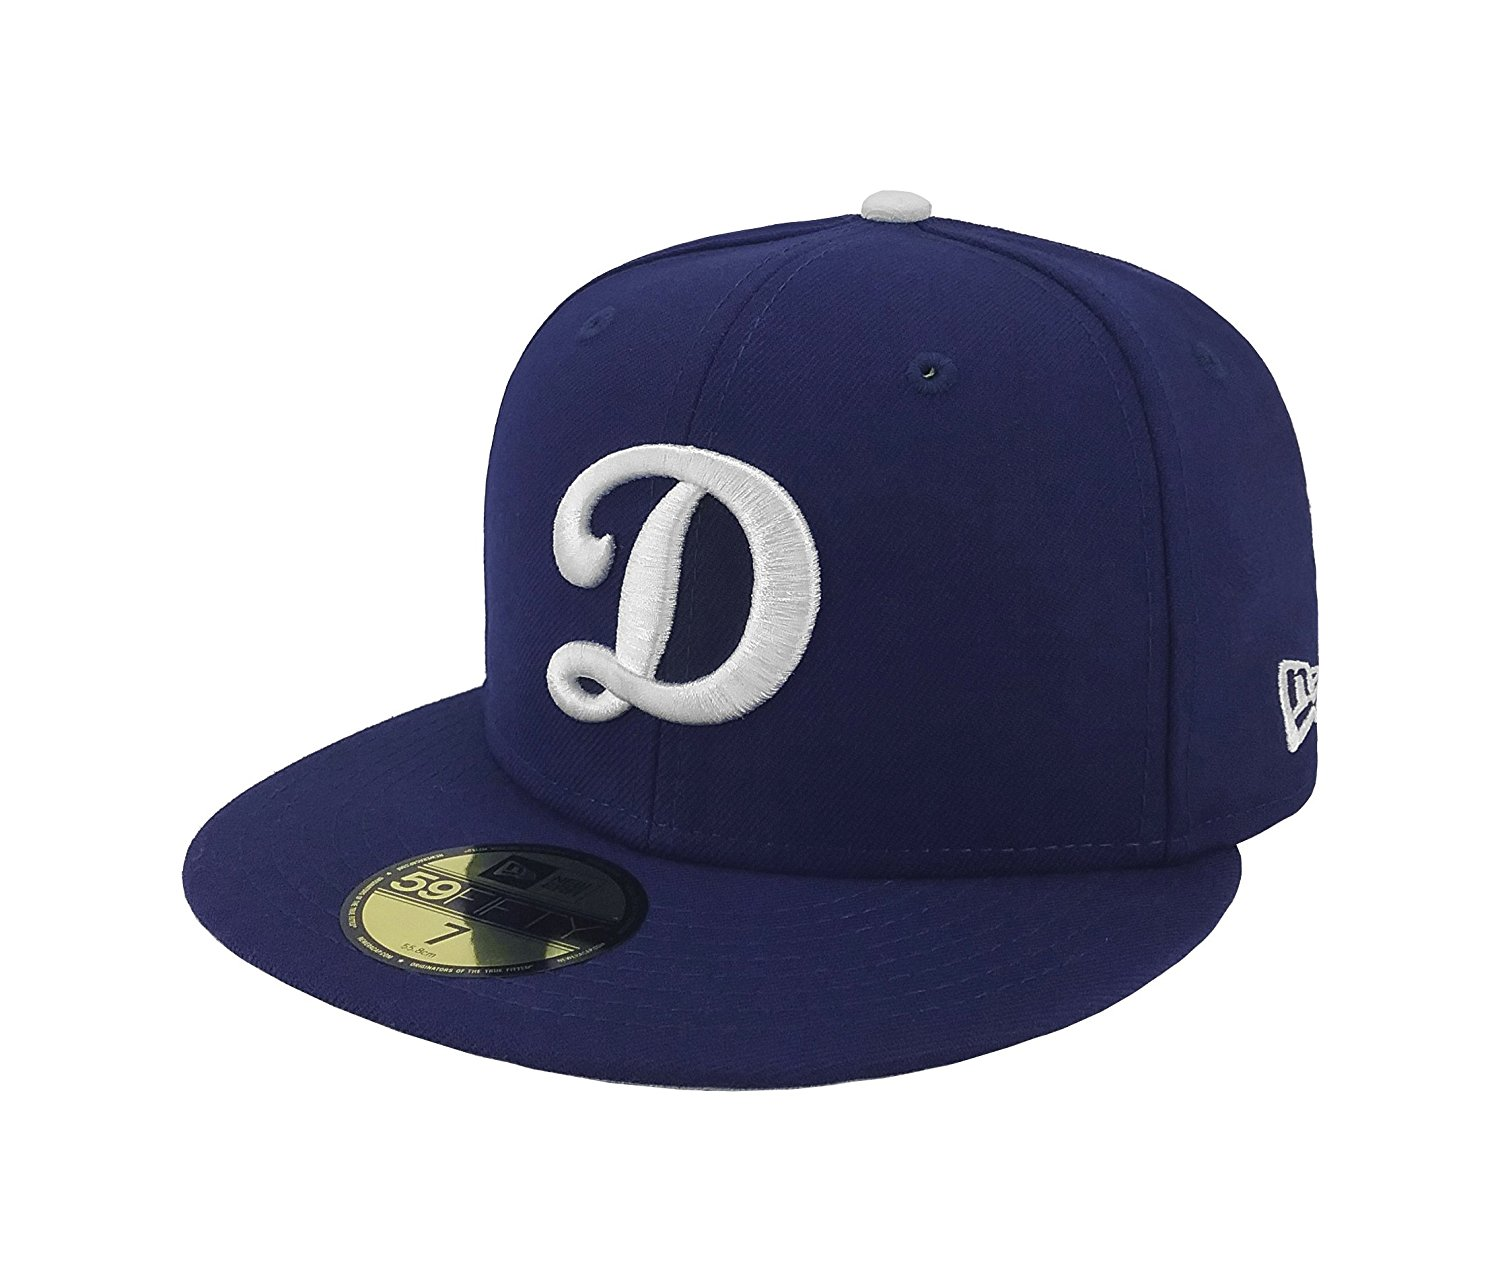 7e65443191c ... brooklyn nets black gray official team color 2tone 59fifty fitted hat  8c7eb discount code for get quotations new era 59fifty hat mlb los angeles  dodgers ...